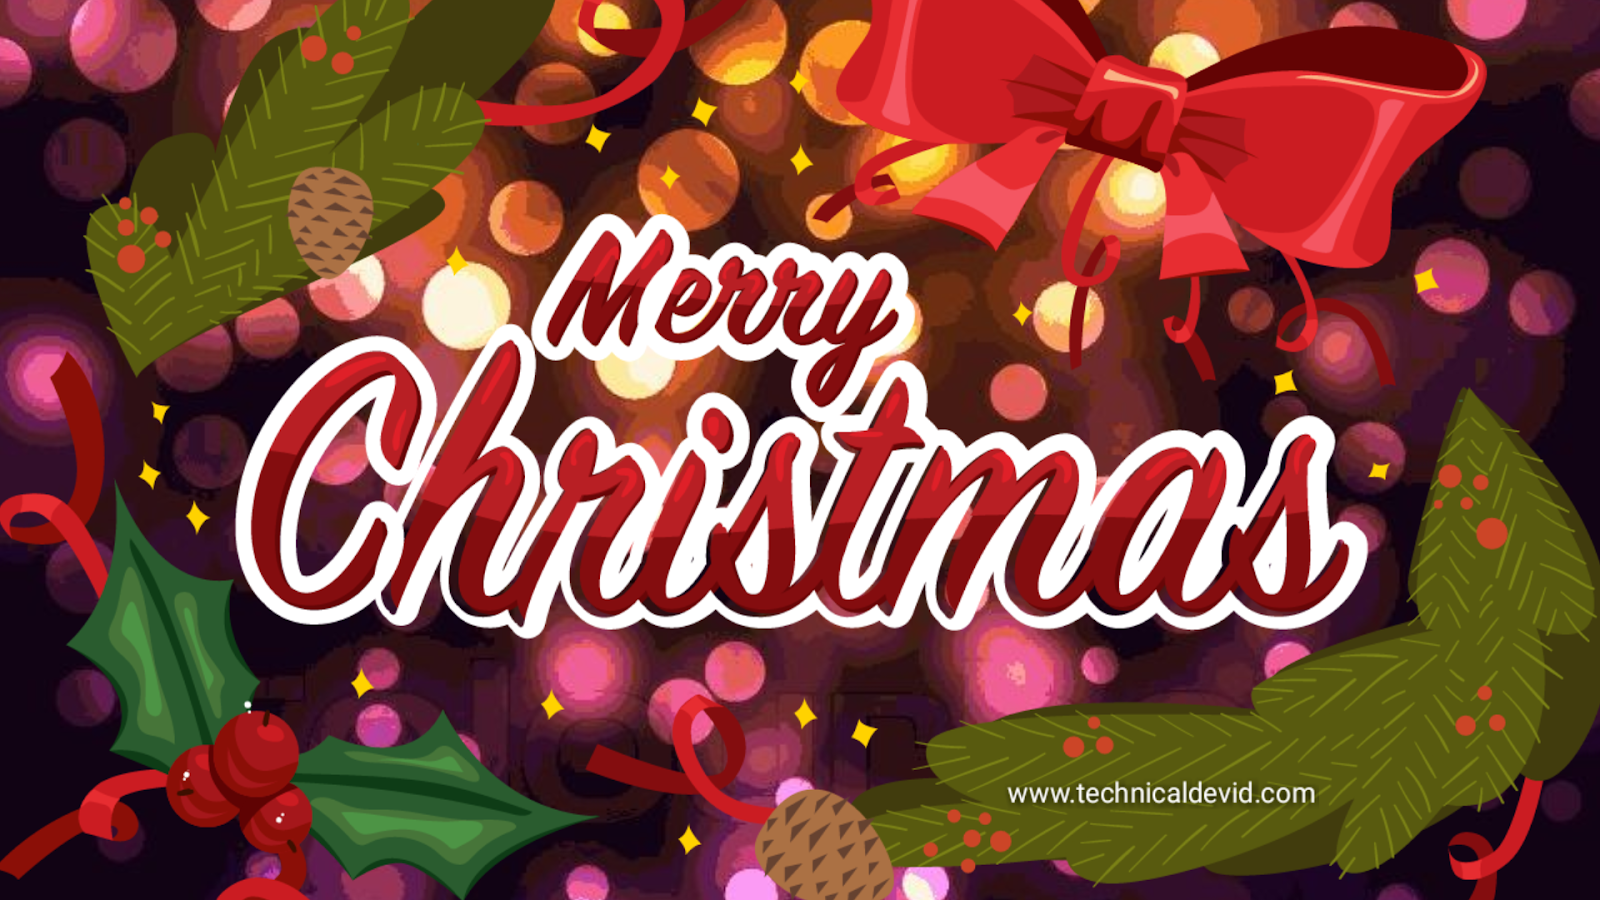 Christmas image 2018 | Happy Christmas day 2018 images - Technical devid